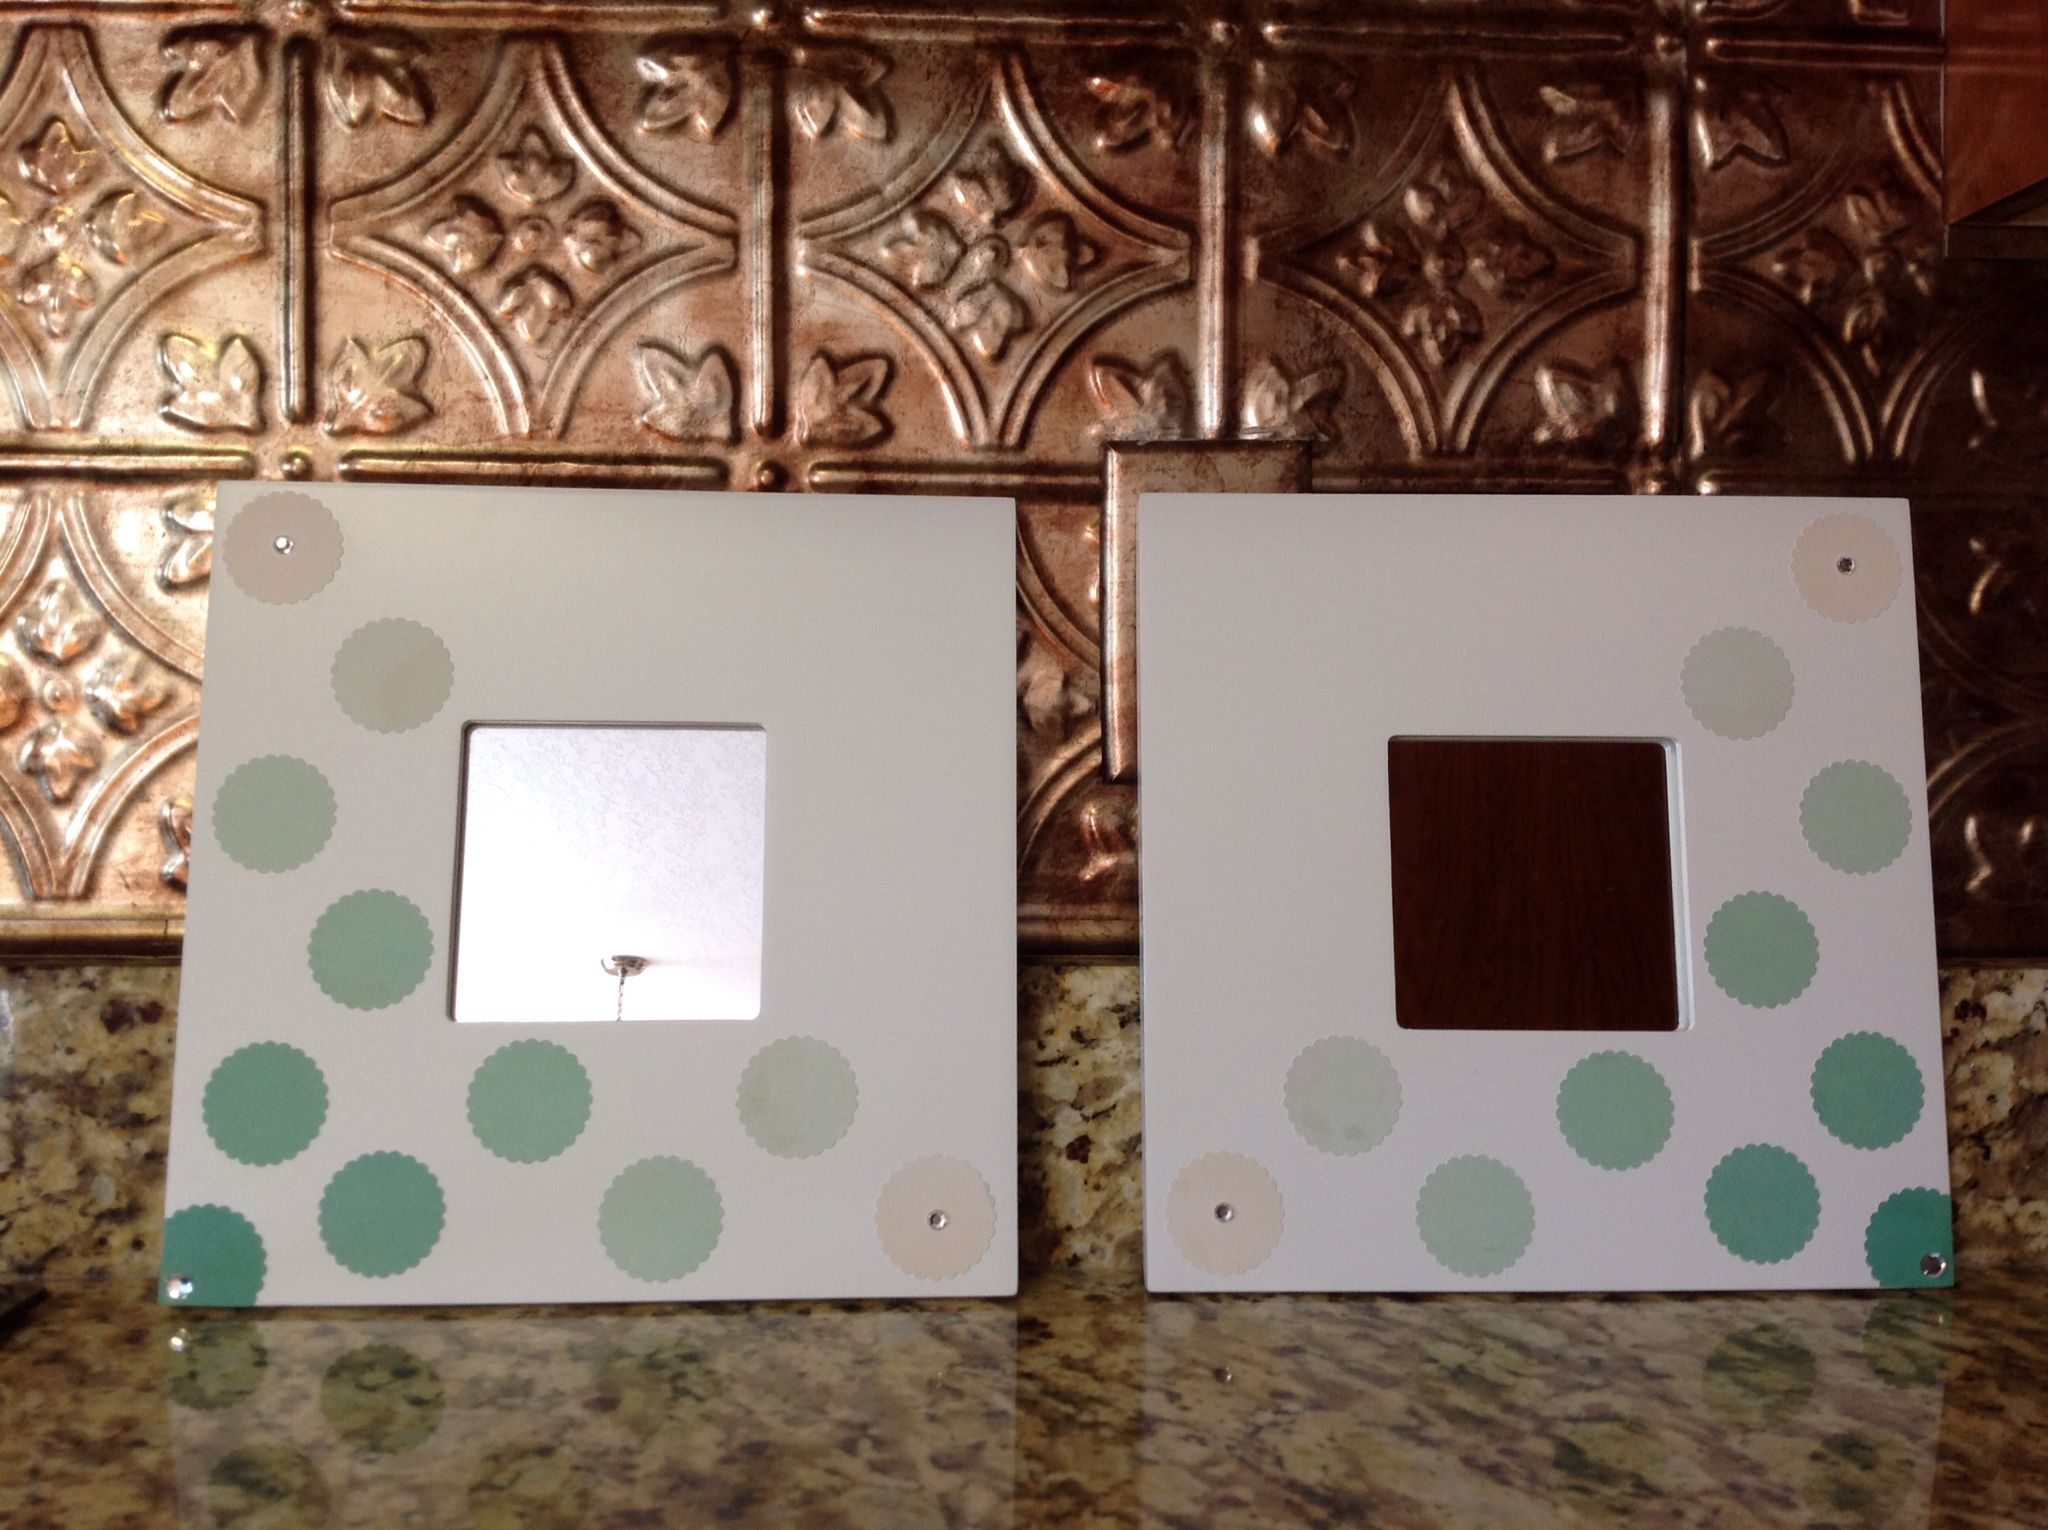 ikea malma mirrors decorated with scrapbook paper cutouts. | my